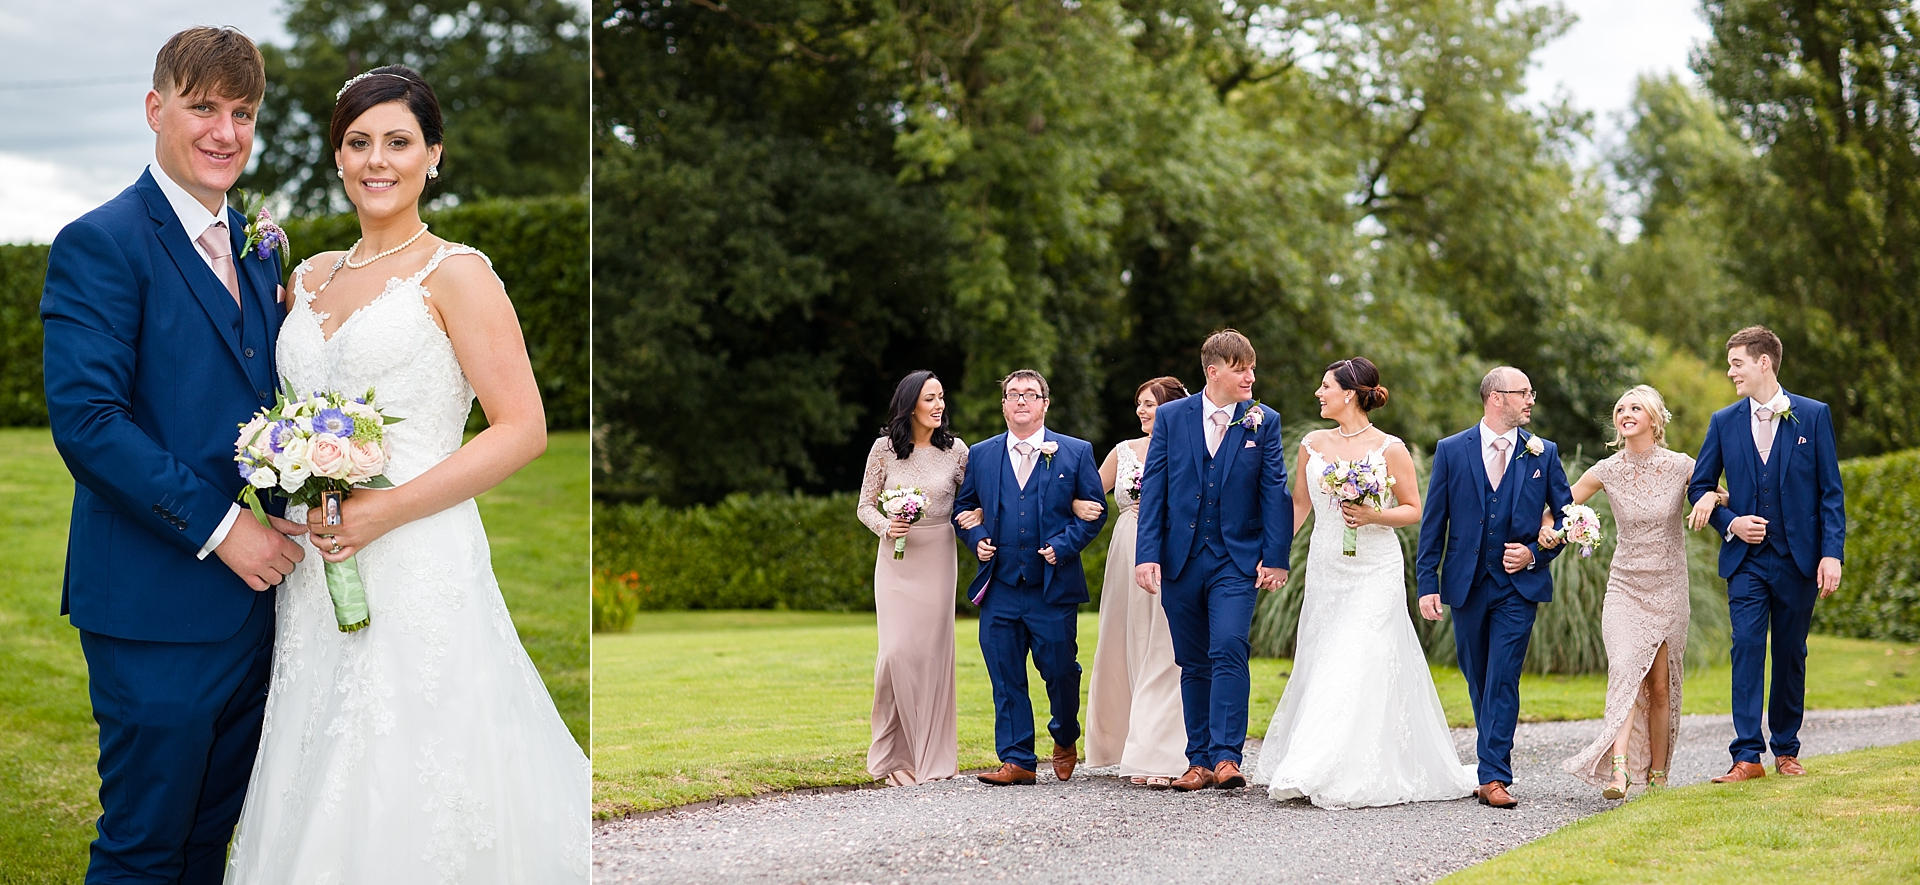 wedding photographer crewe Buddileigh 11.jpg